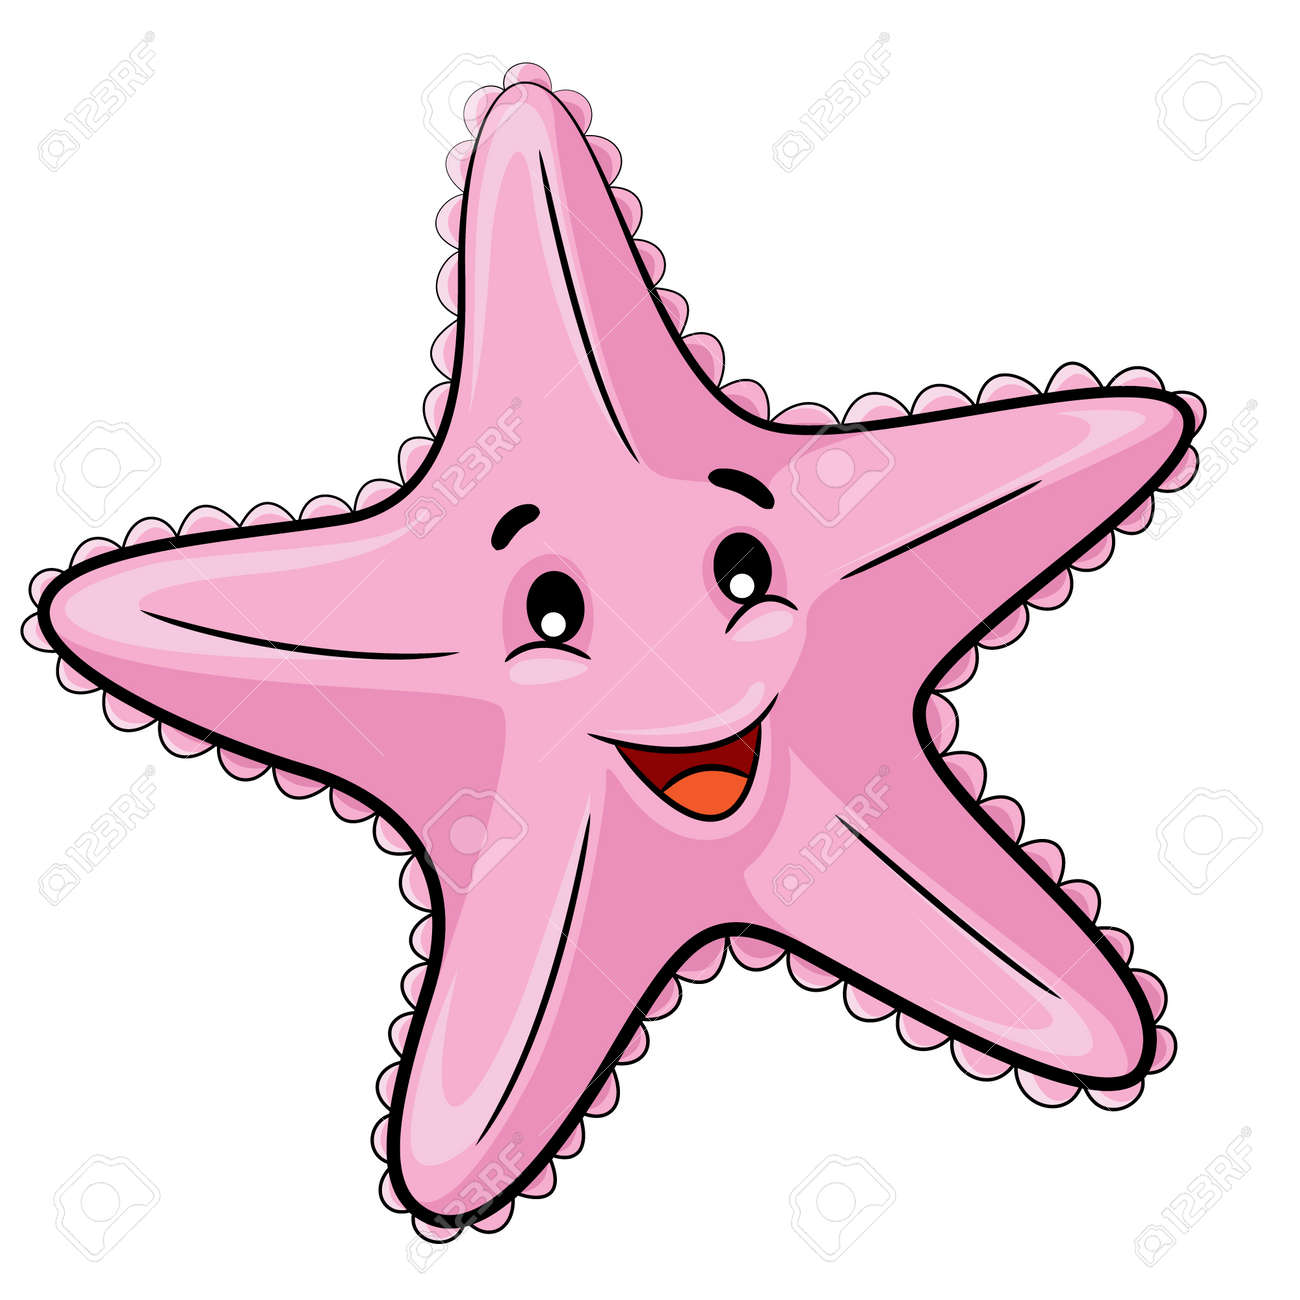 Illustration Of Cute Cartoon Starfish. Royalty Free Cliparts ... for Pink Starfish Clipart  45ifm